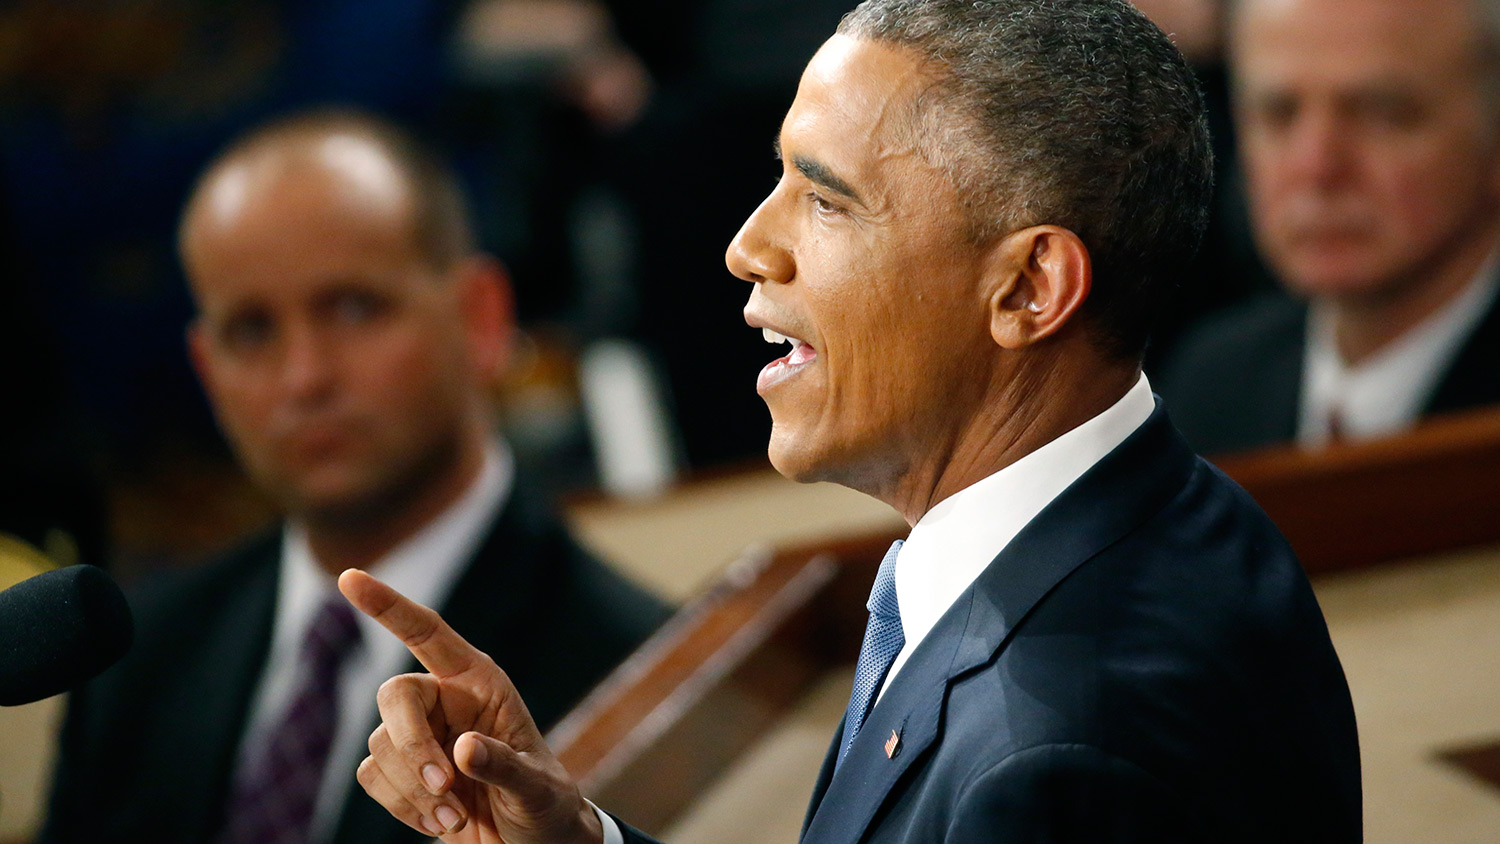 U.S. President Barack Obama delivers his State of the Union address to a joint session of the U.S. Congress on Capitol Hill in Washington, January 20, 2015.